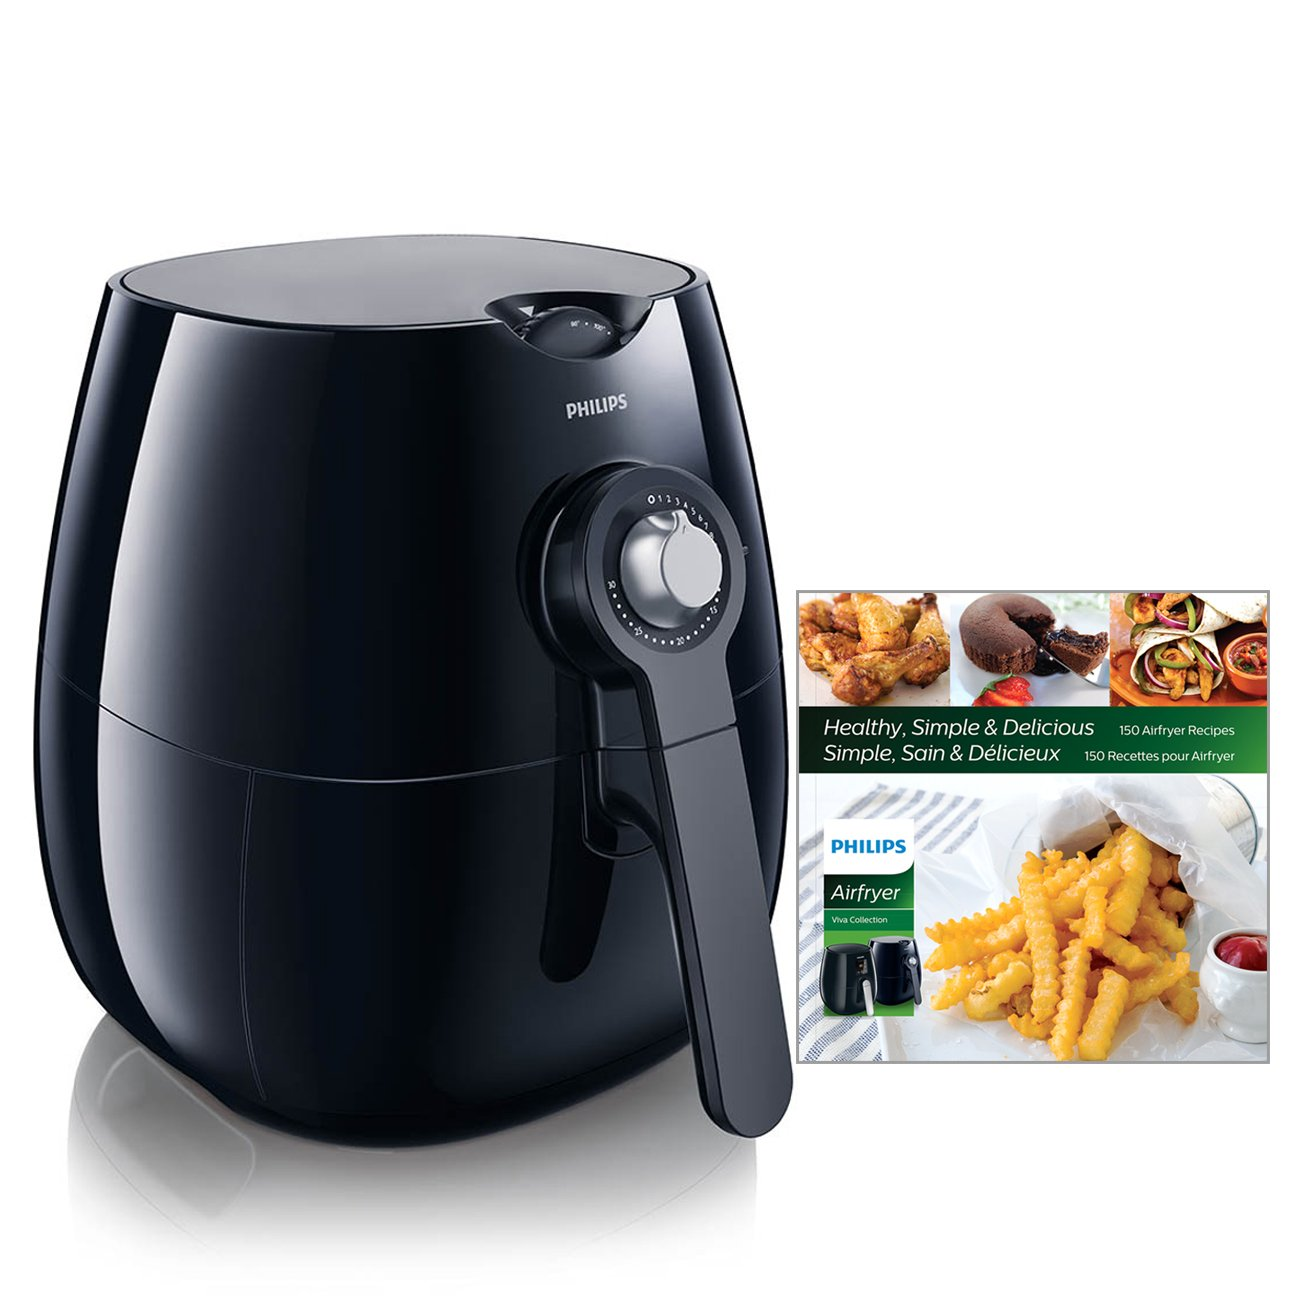 Philips HD9220/28 Viva Airfryer (1.8lb/2.75qt), Black Fryer